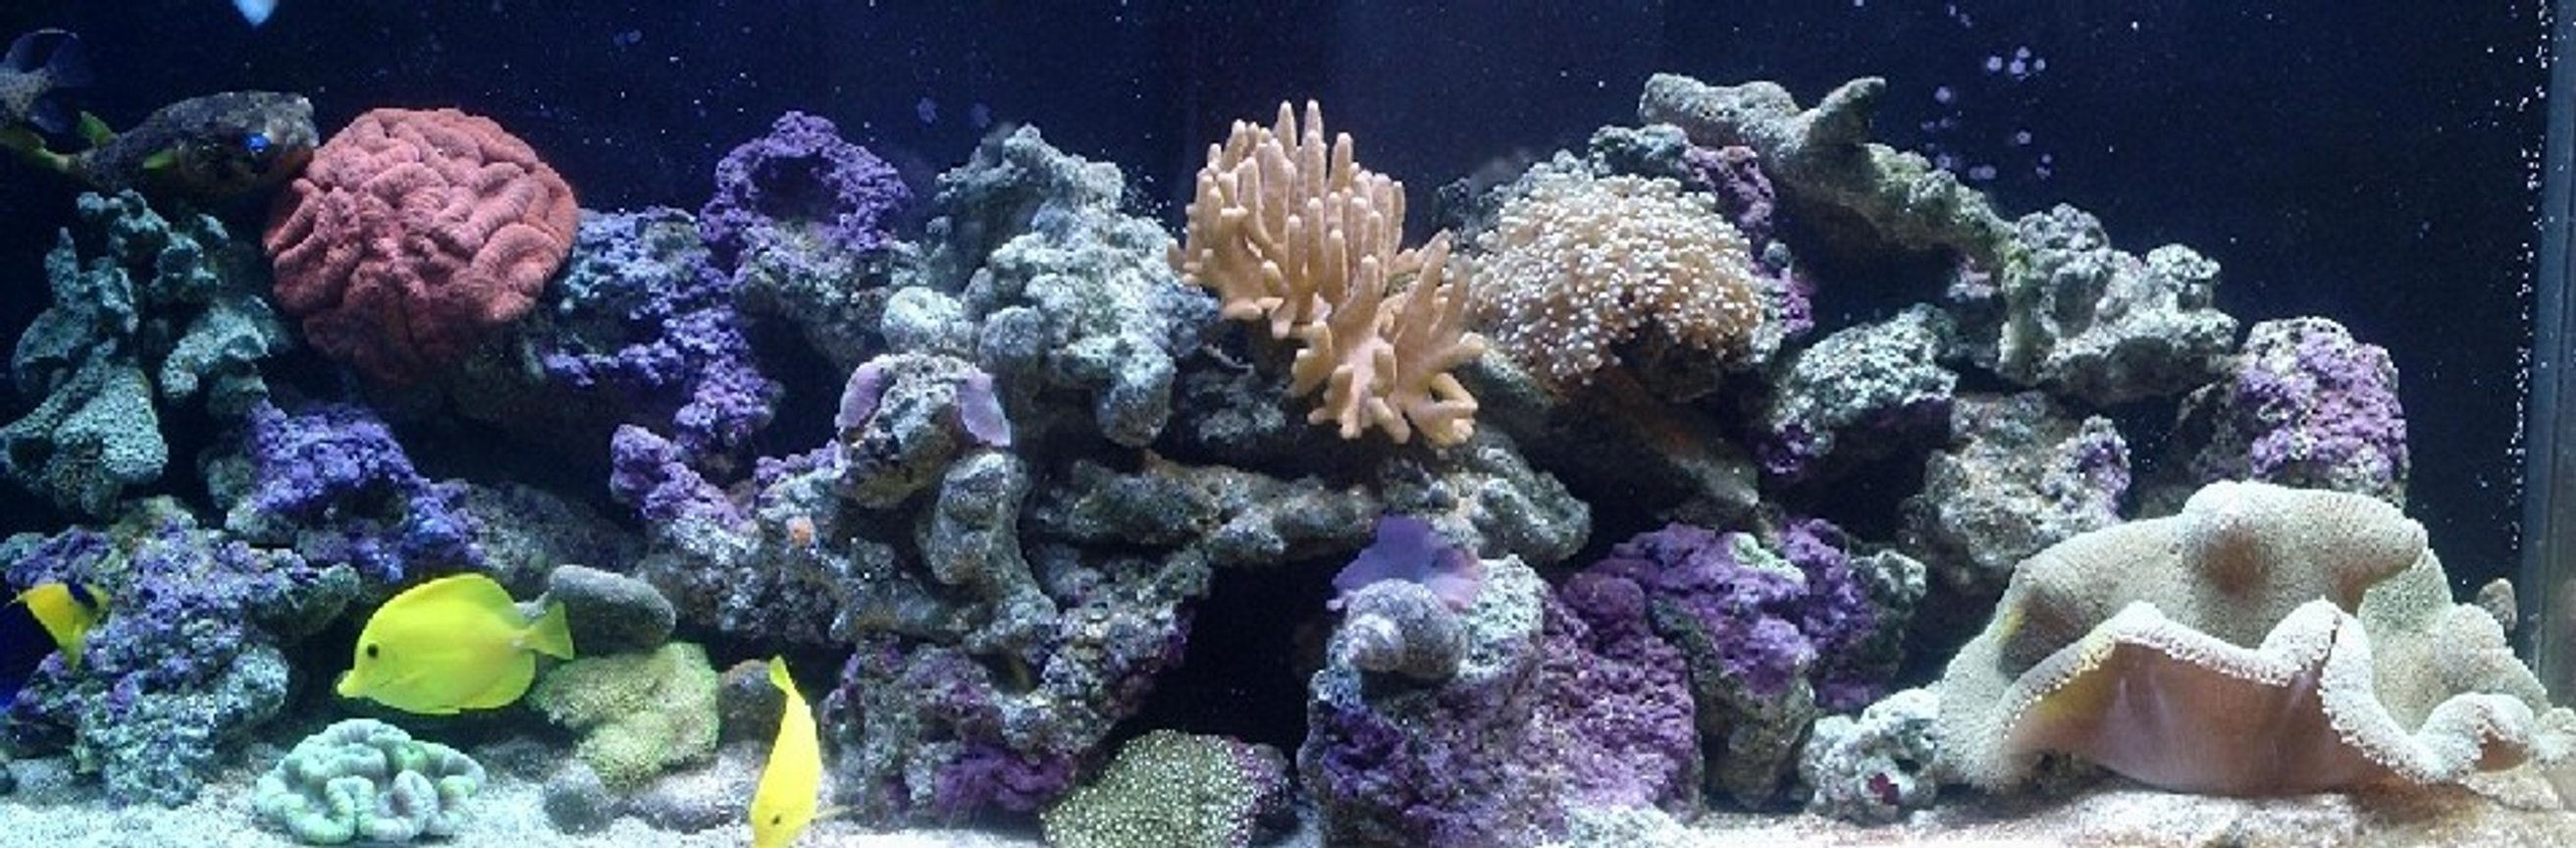 110 gallons reef tank (mostly live coral and fish) - My tank